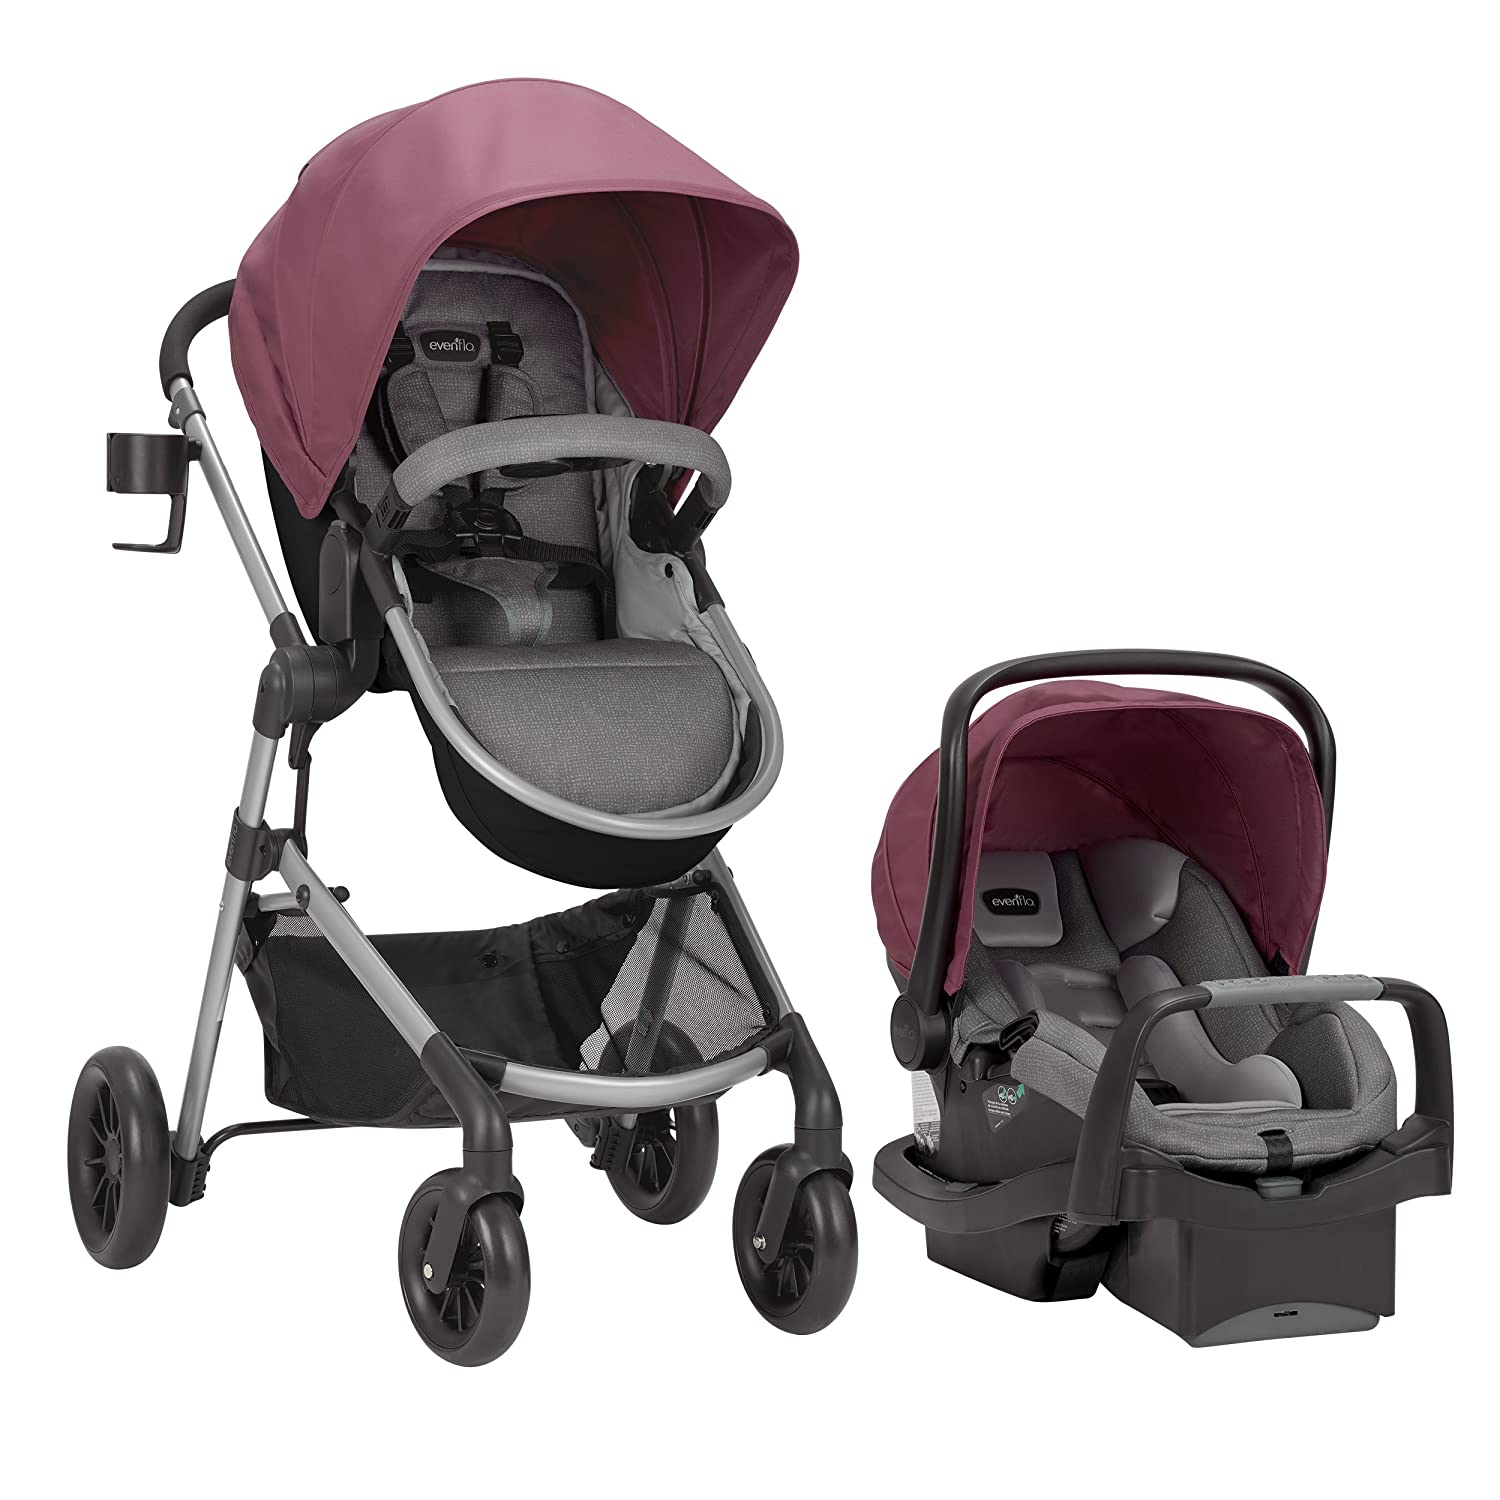 Evenflo Pivot Year-end annual account Modular Travel System Complete Free Shipping SafeMax With Car Seat